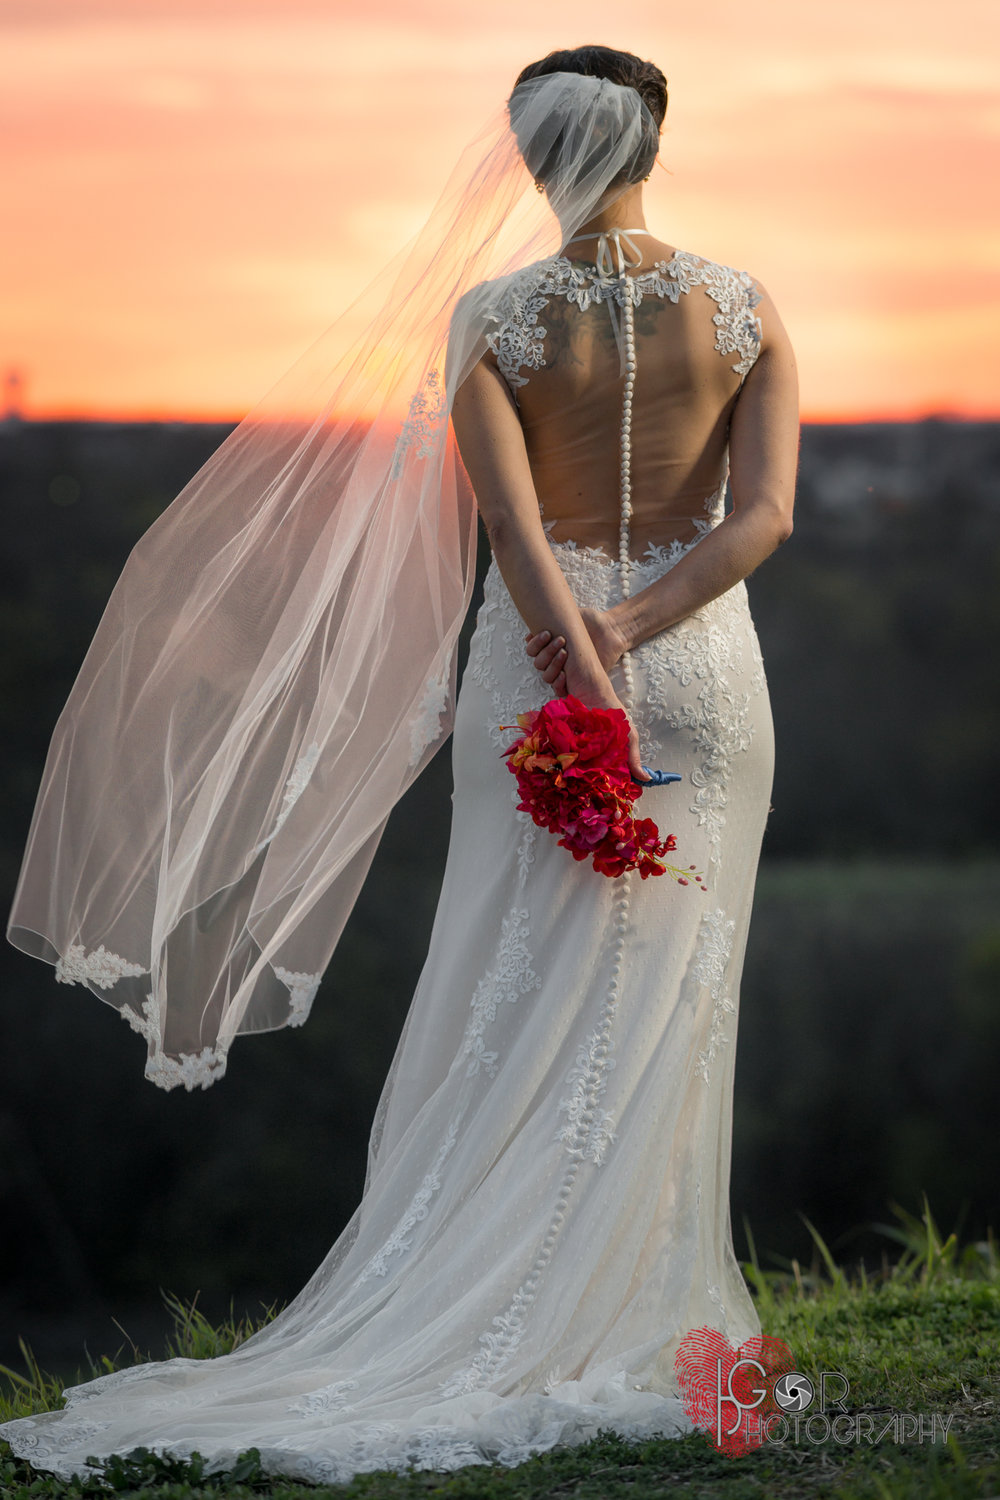 Arbor Hills Bridal Session in Plano by Igor and Meaghan!